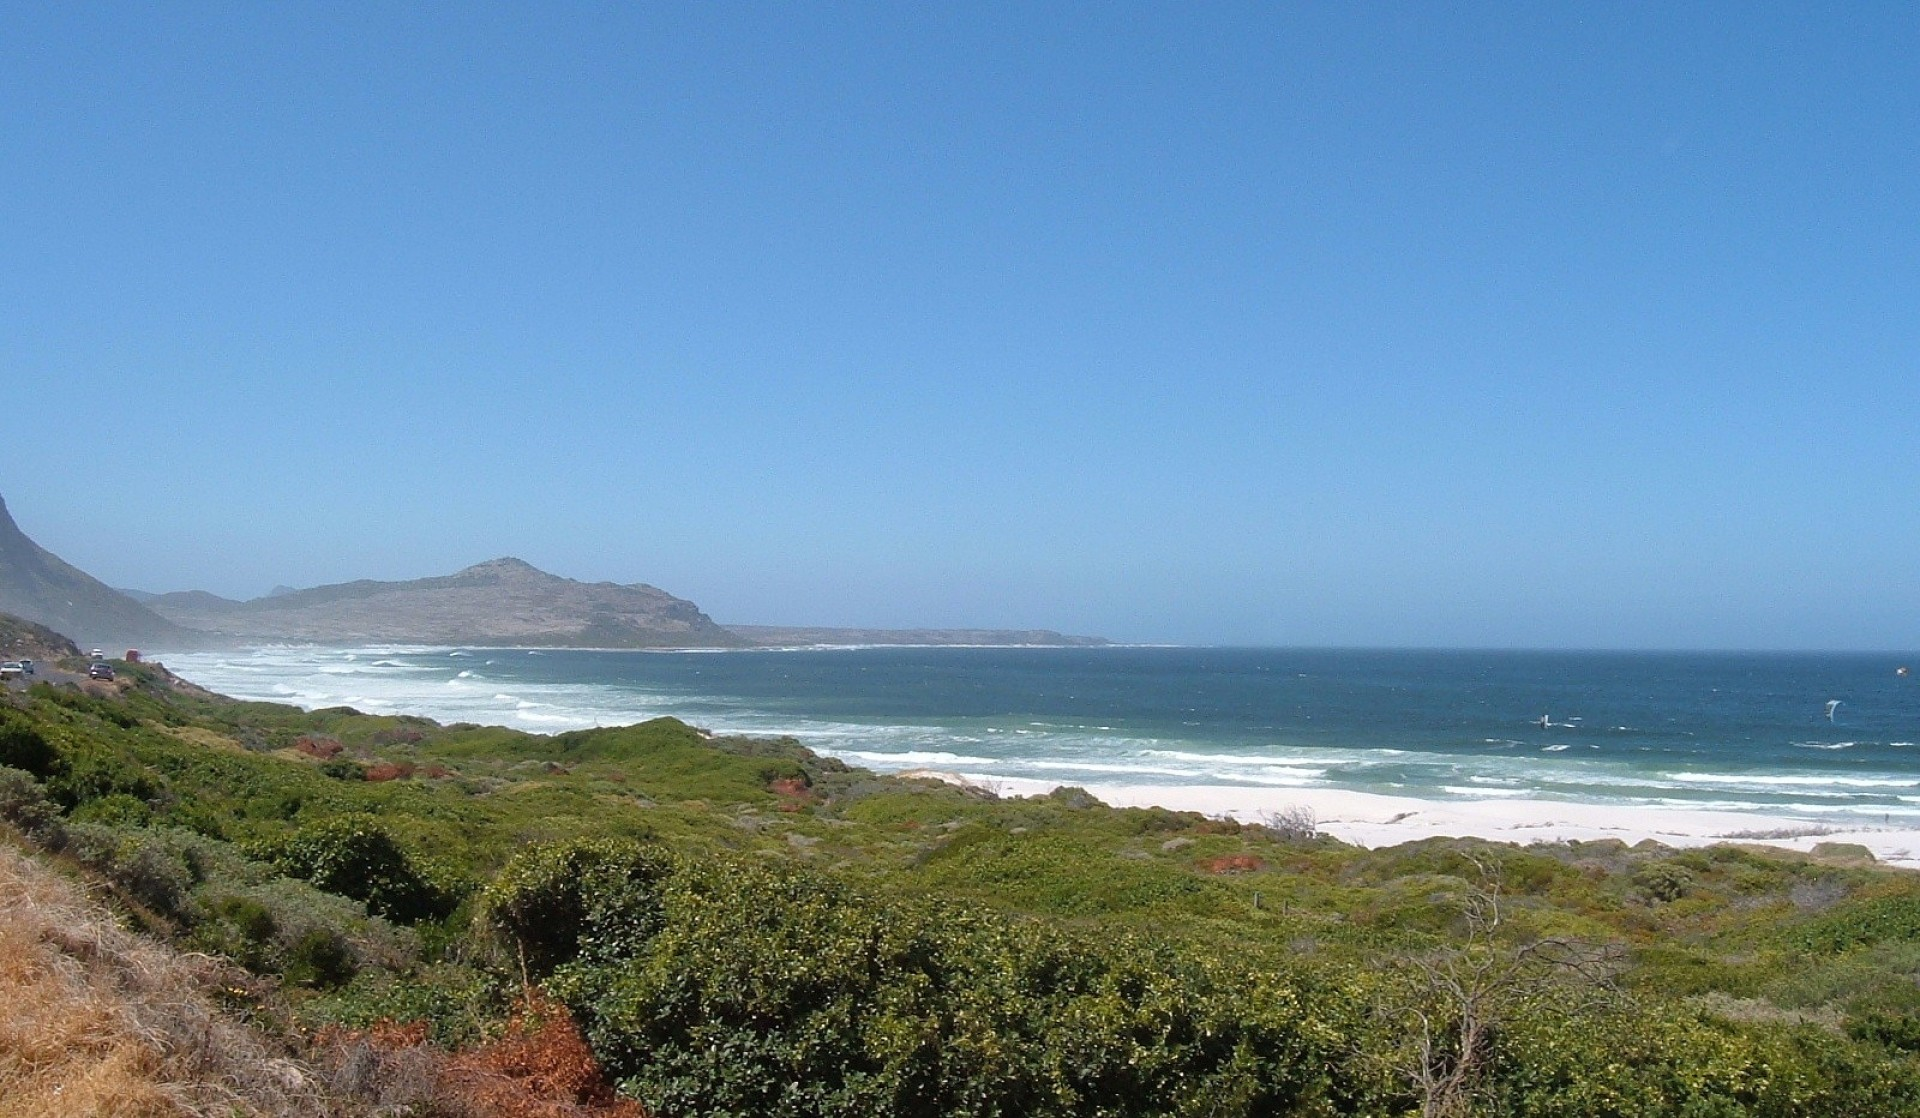 Mark Drifter's photo of Kommetjie